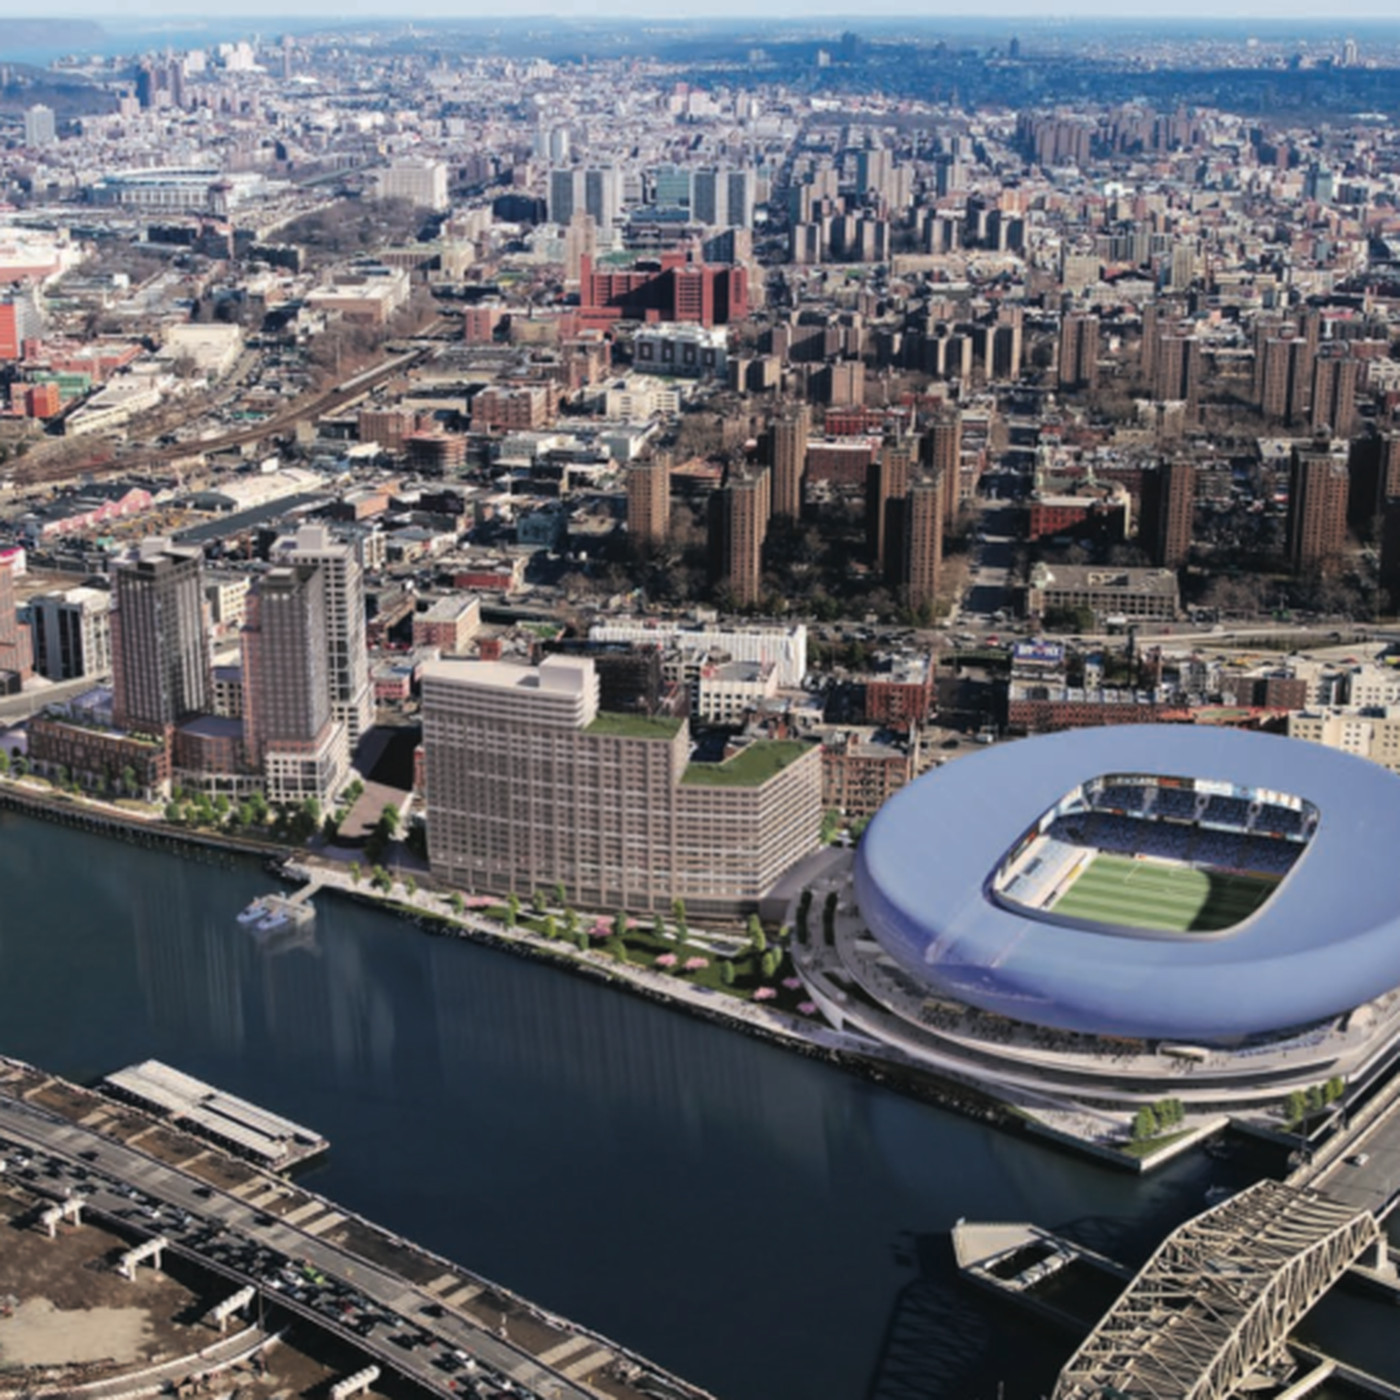 c4a7771be6ce5 NYC s first soccer stadium may rise next to Yankee Stadium - Curbed NY